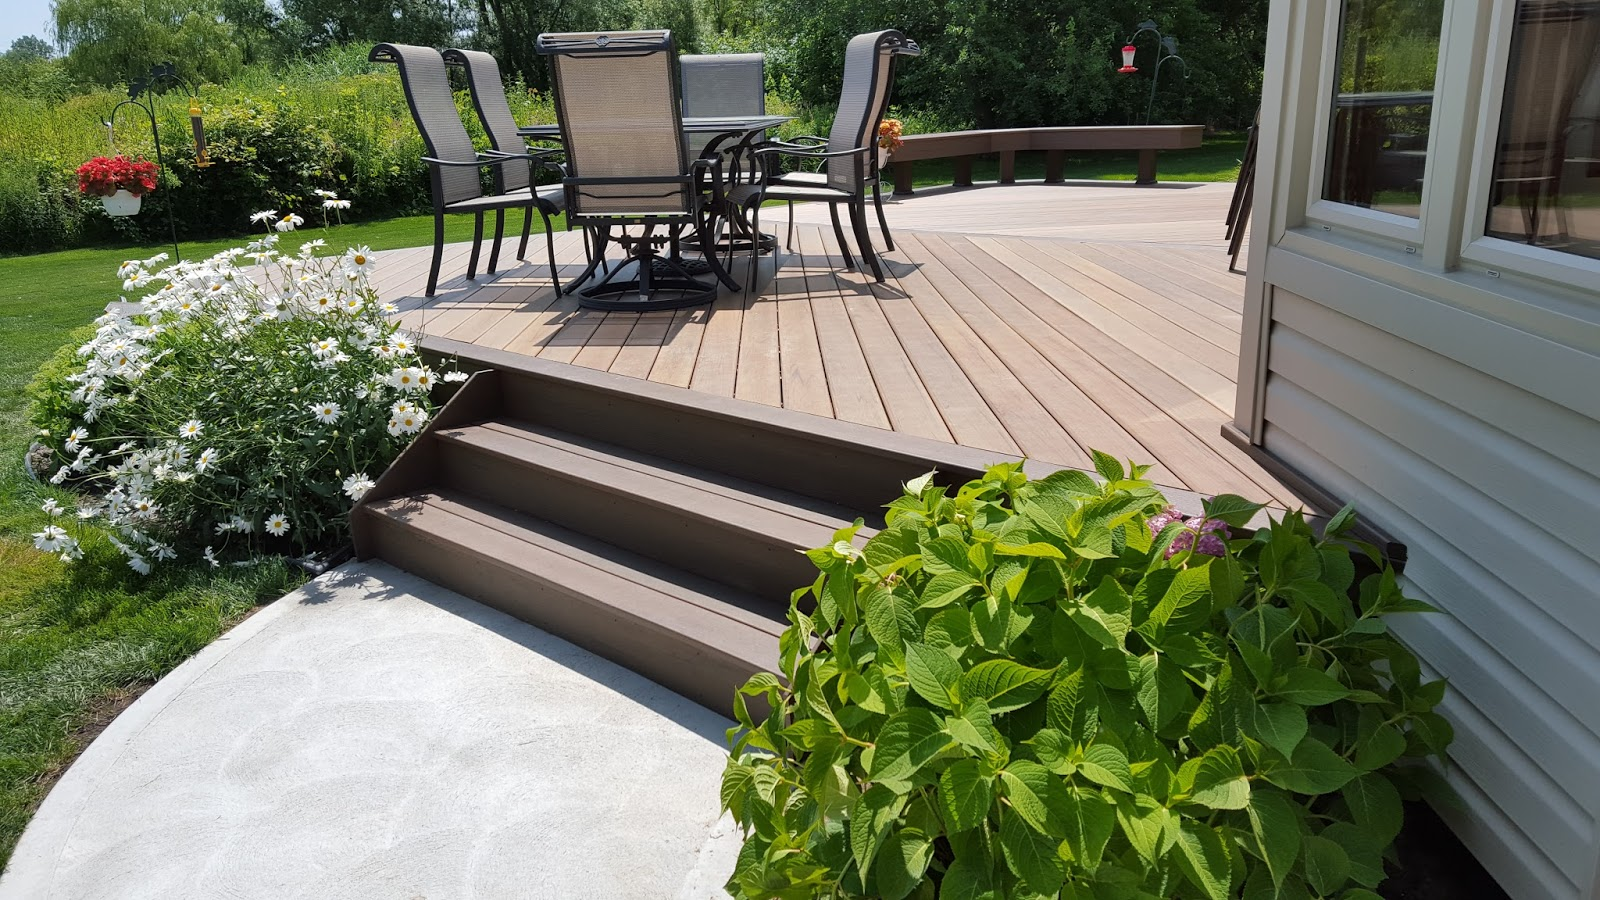 Outdoor living how to build a low to the ground deck part 2 for How to build a low deck